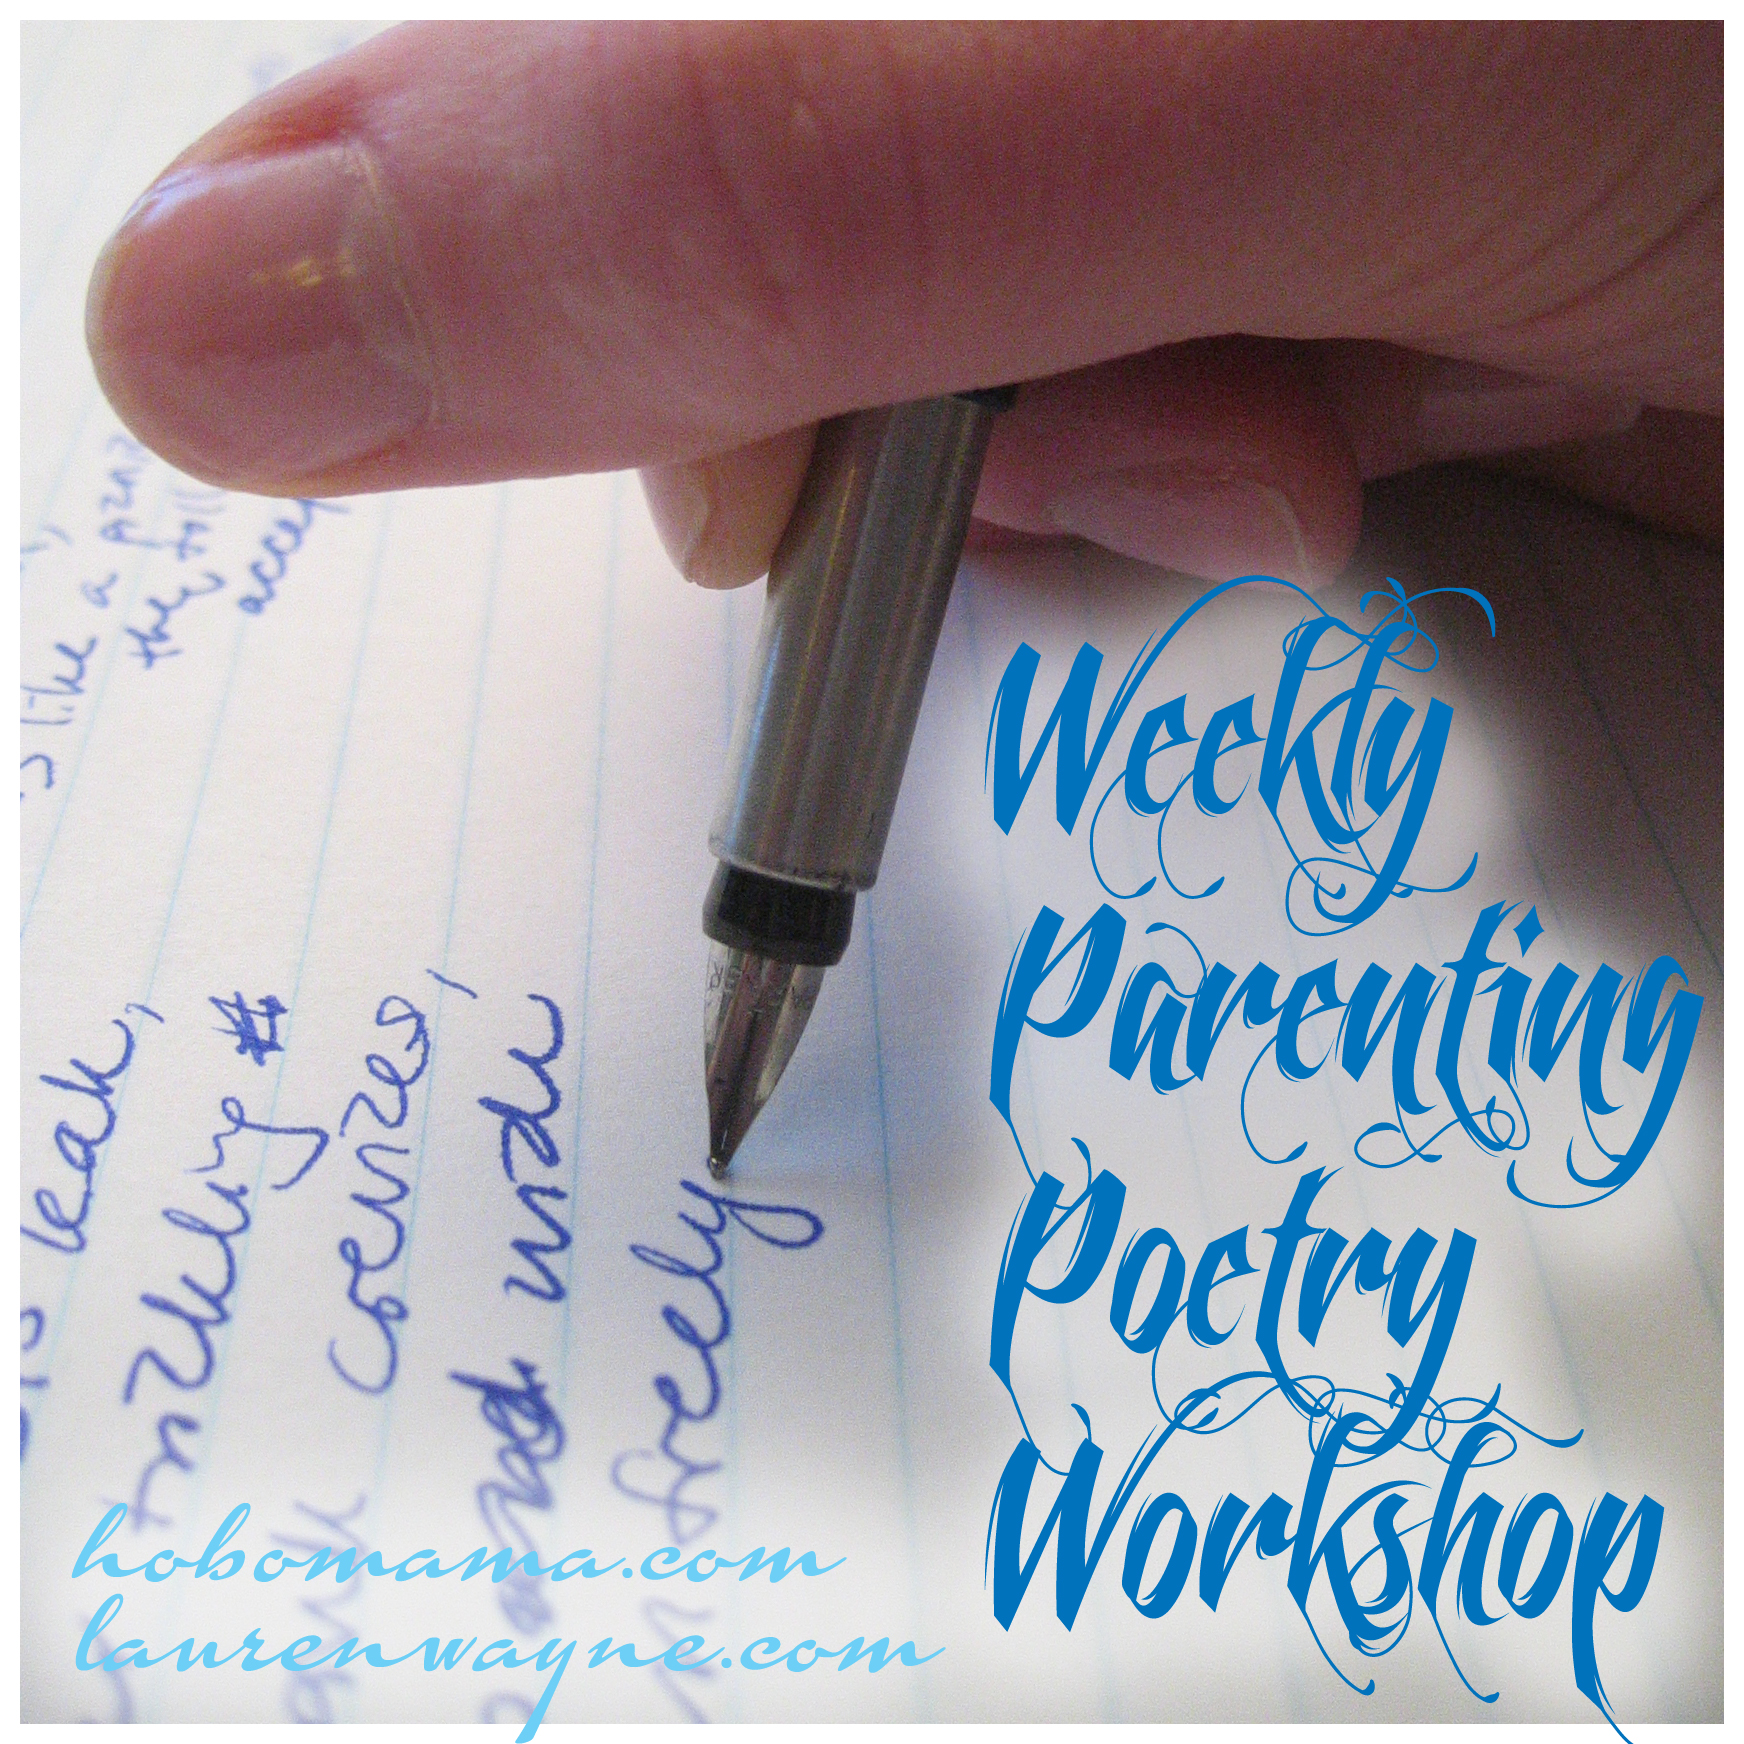 Weekly Parenting Poetry Workshop